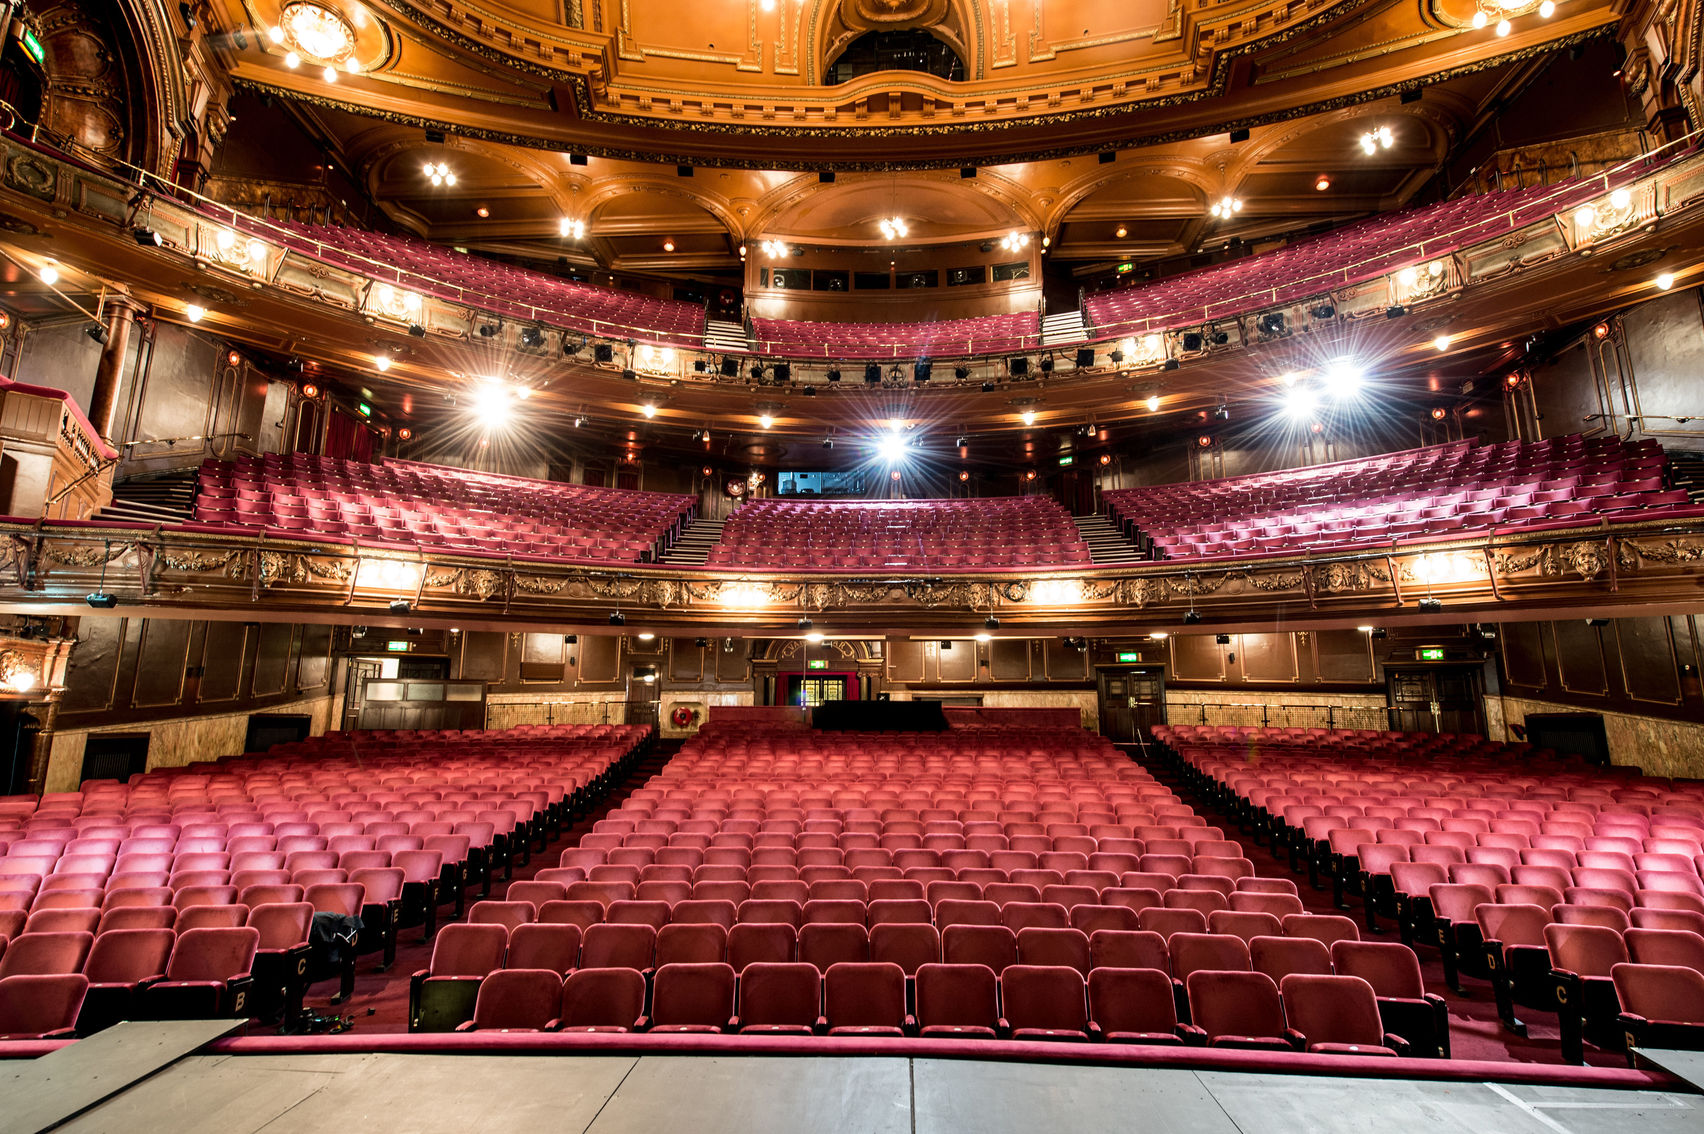 The view of the London Palladium from the stage